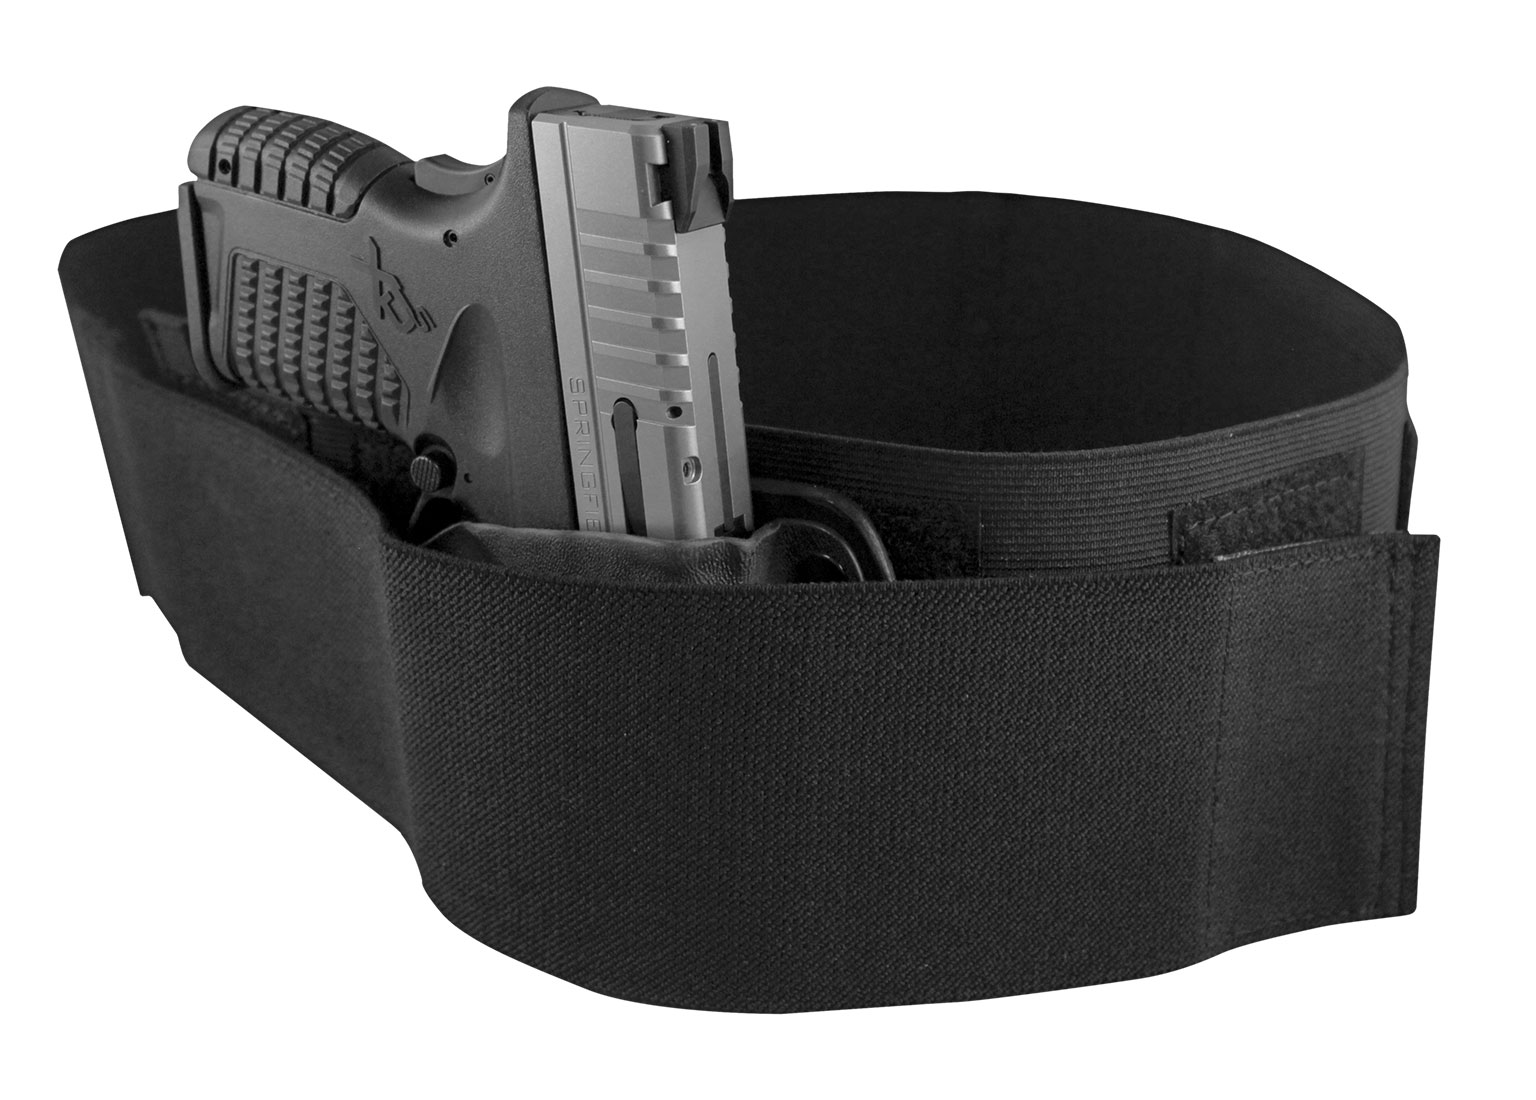 sweatpants, bellyband, belly band holster with hard trigger cover, ultimate belly band holster, deep concealment, modular belly band, CrossBreed Holsters, holster, IWB, Concealed Carry, most comfortable holster, hybrid holster, stay strapped, sweatpants, lockdown, personal protection, best belly band, best holster, best concealed carry holster, CrossBreed, pandemic self-defense